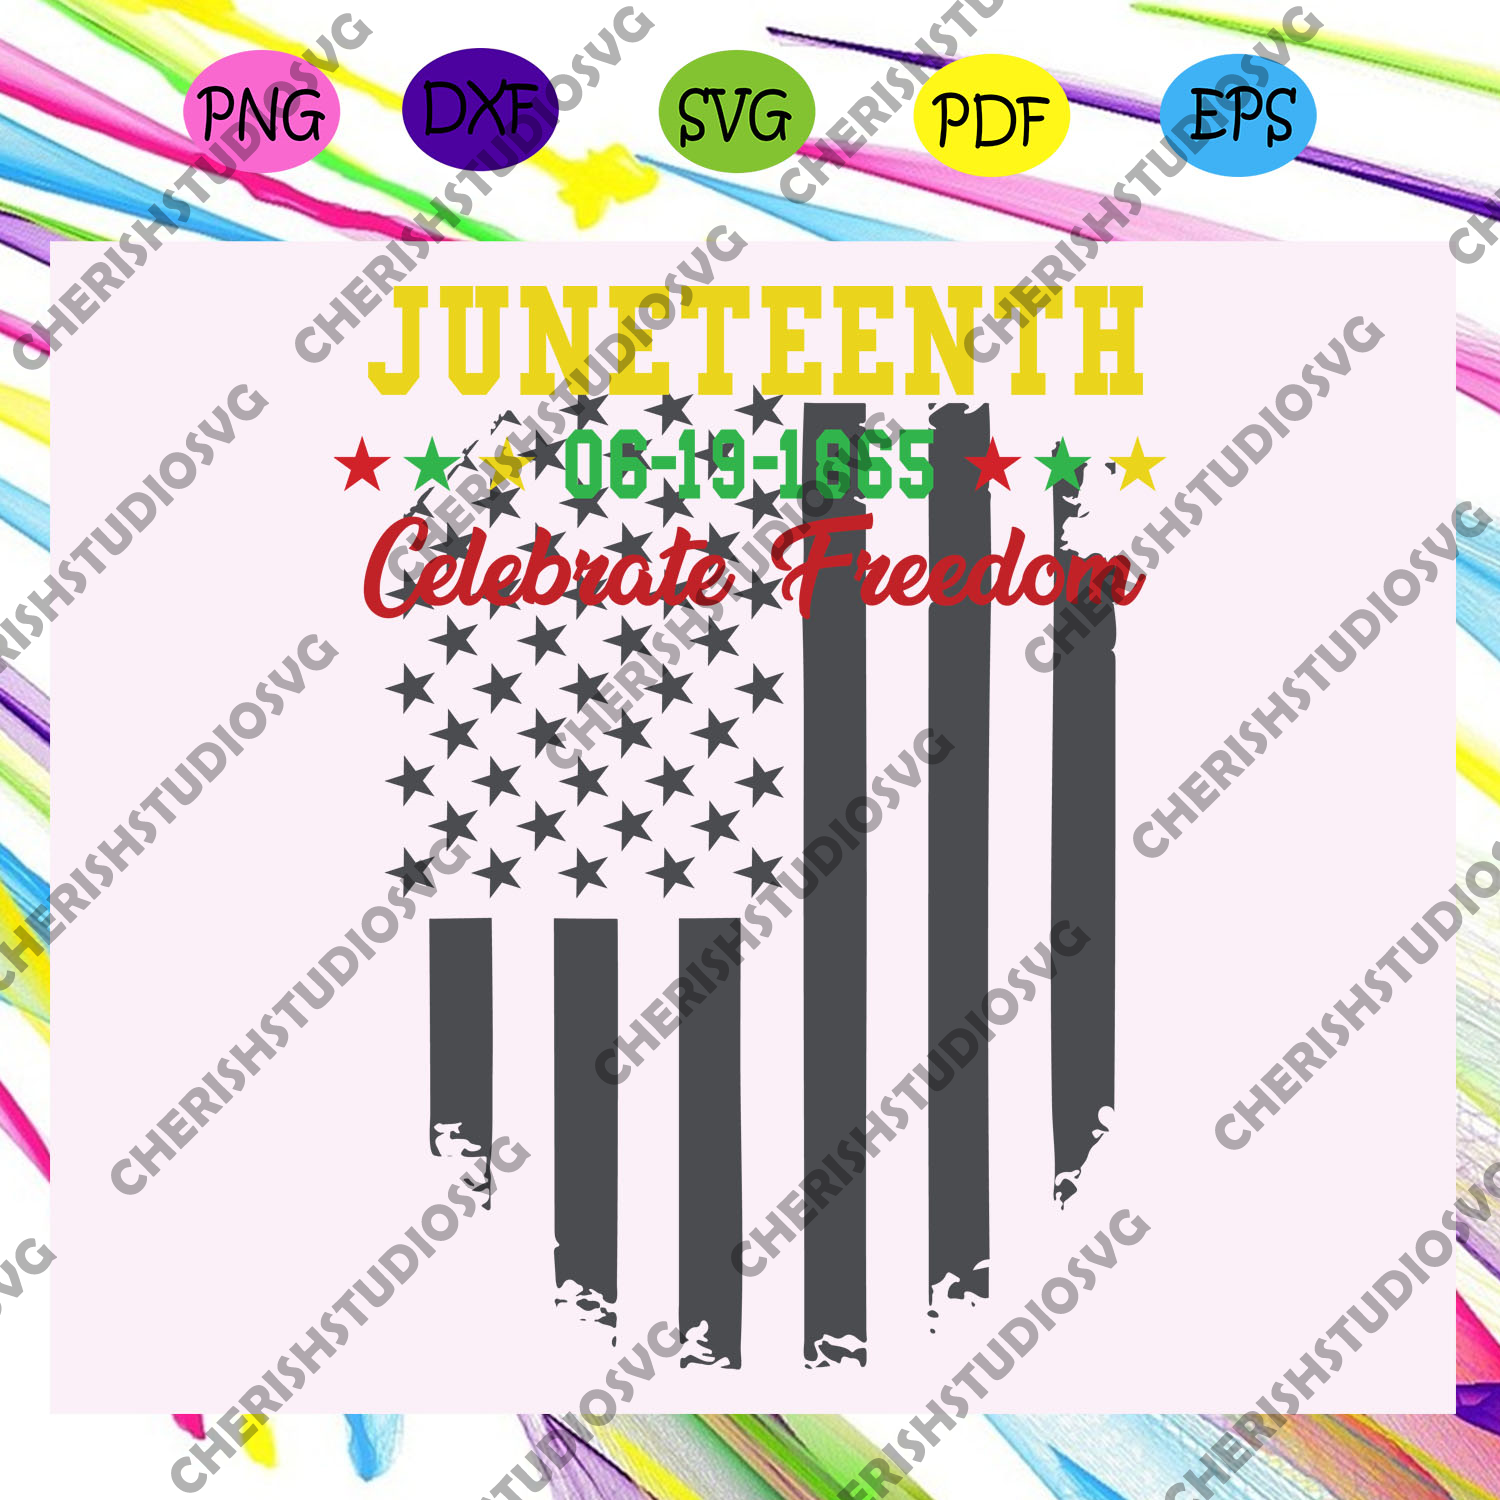 Juneteenth celebrate freedom, Black girl, black girl svg, black girl shirt, black girl gift, black woman svg, sexy black woman svg, For Silhouette, Files For Cricut, SVG, DXF, EPS, PNG Instant Download